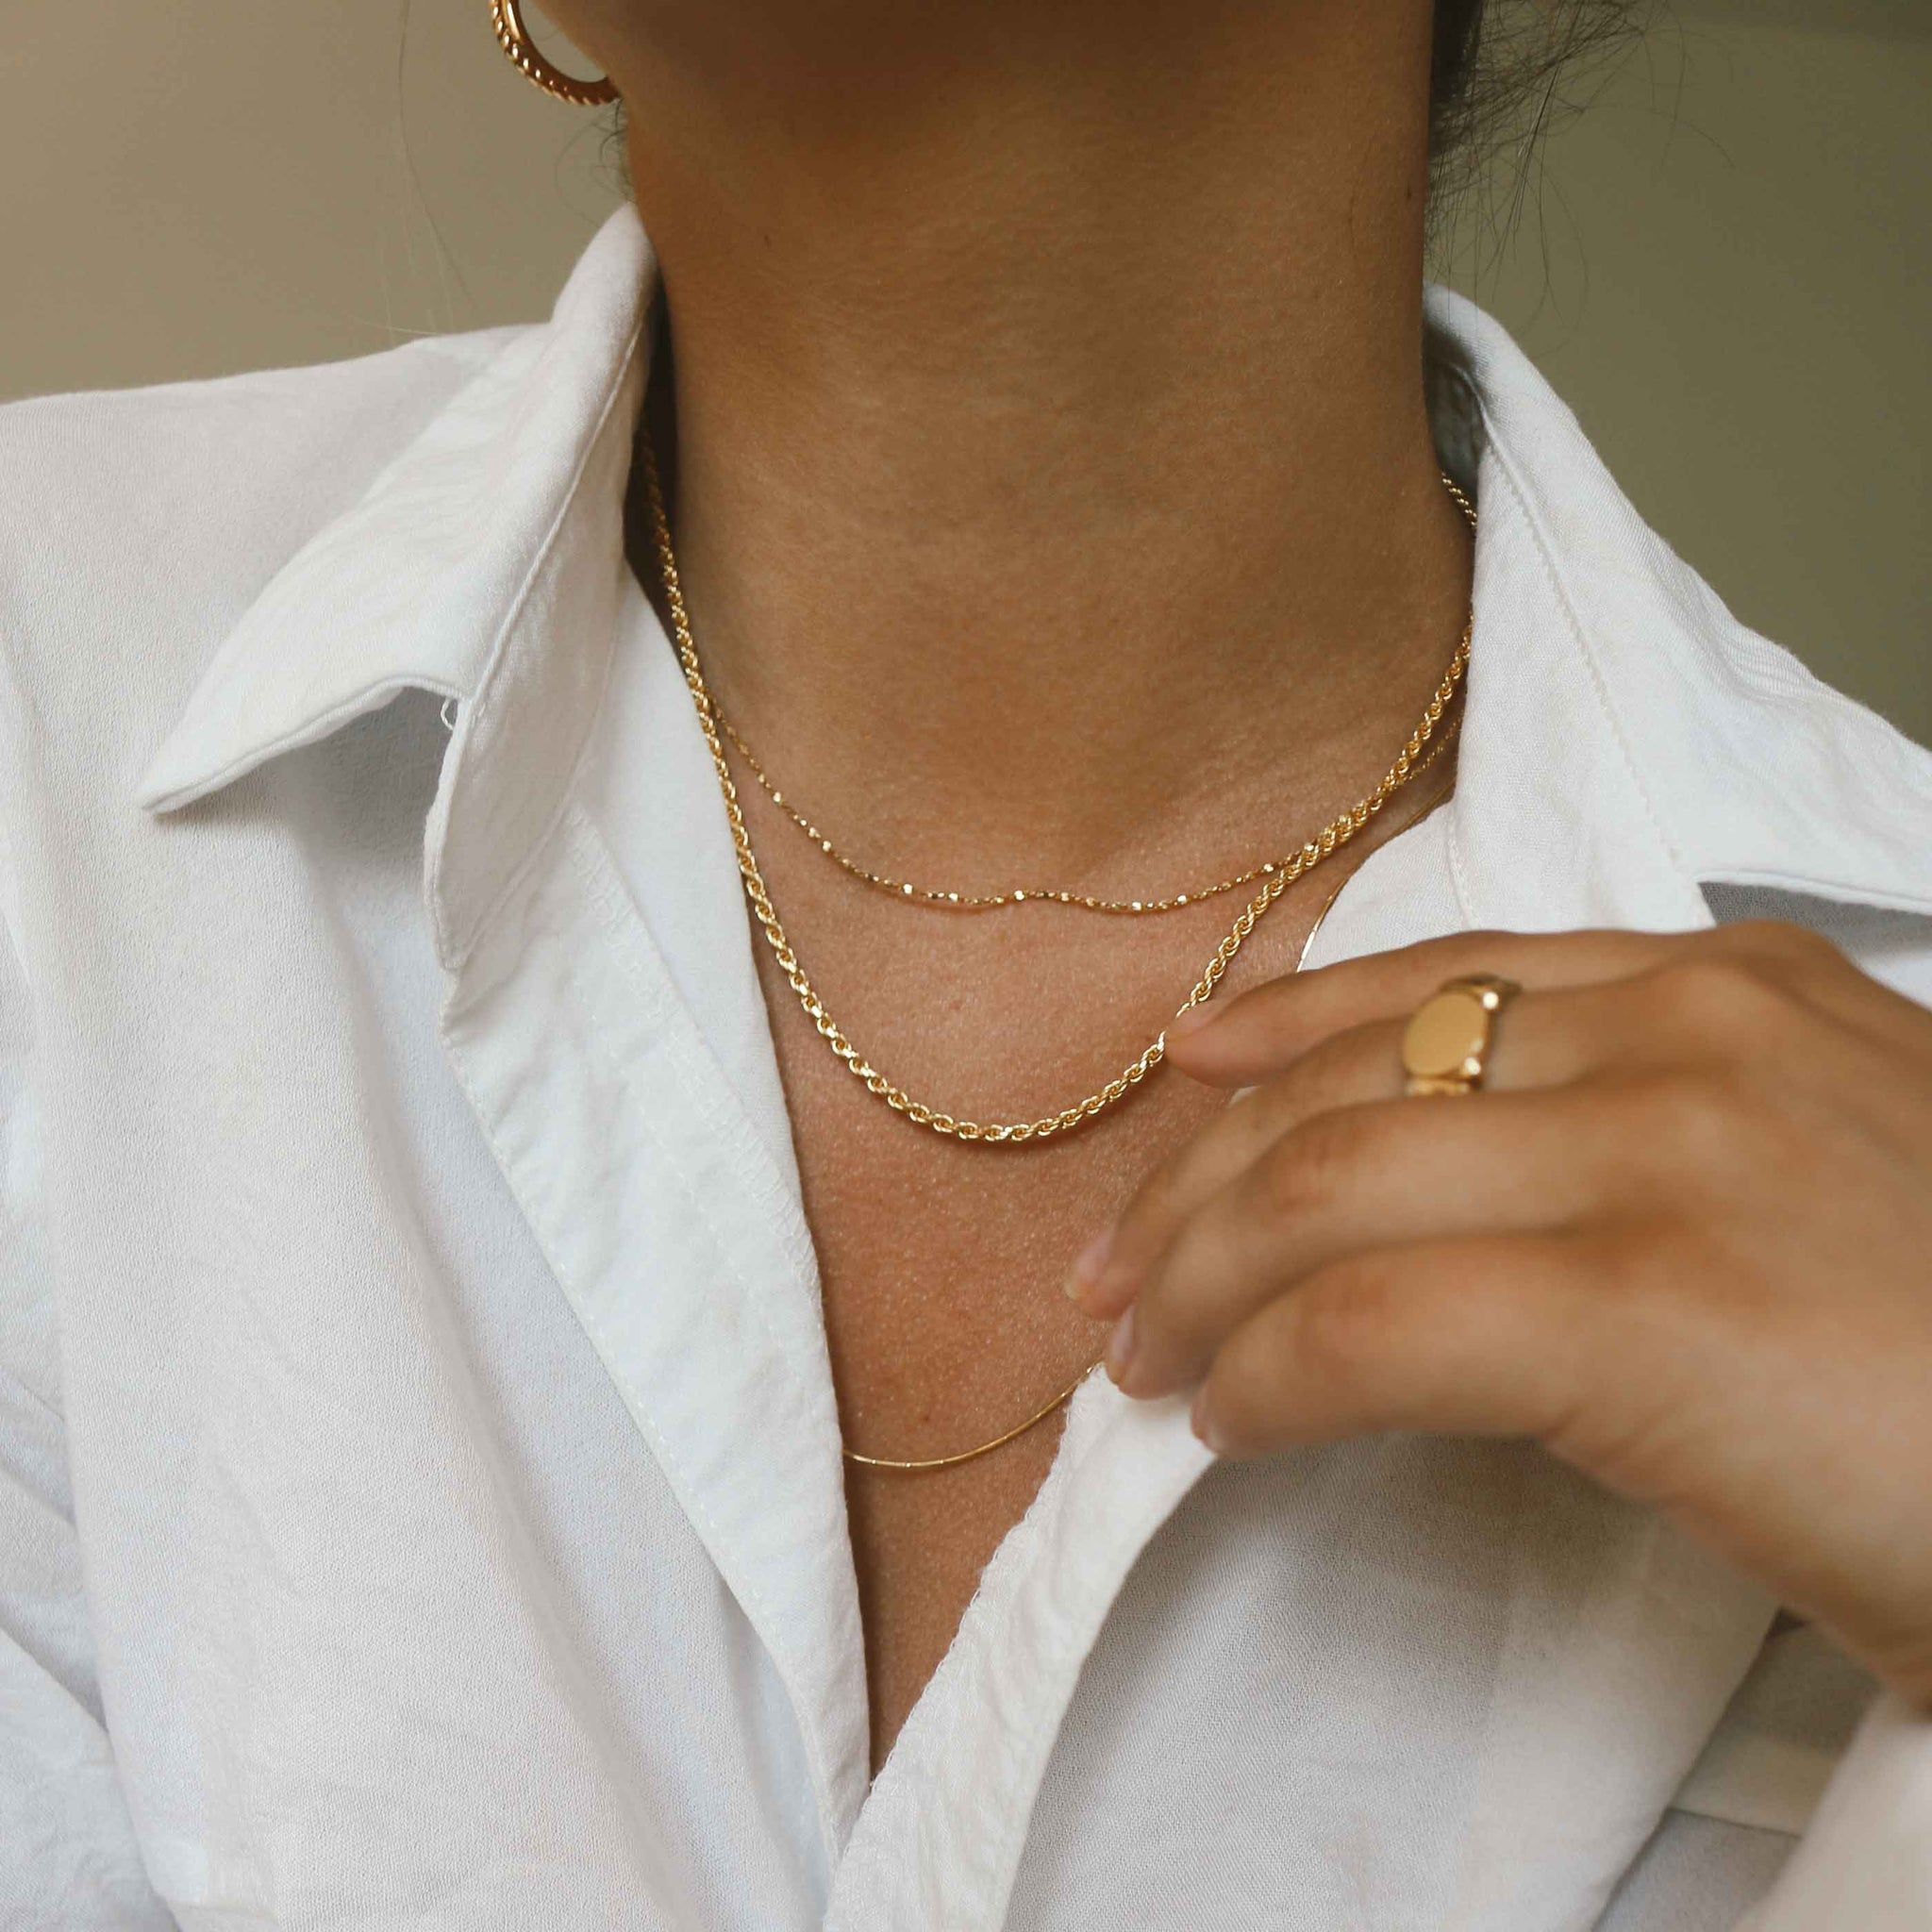 Rope Chain Necklace in Gold worn with gold dainty chain necklaces